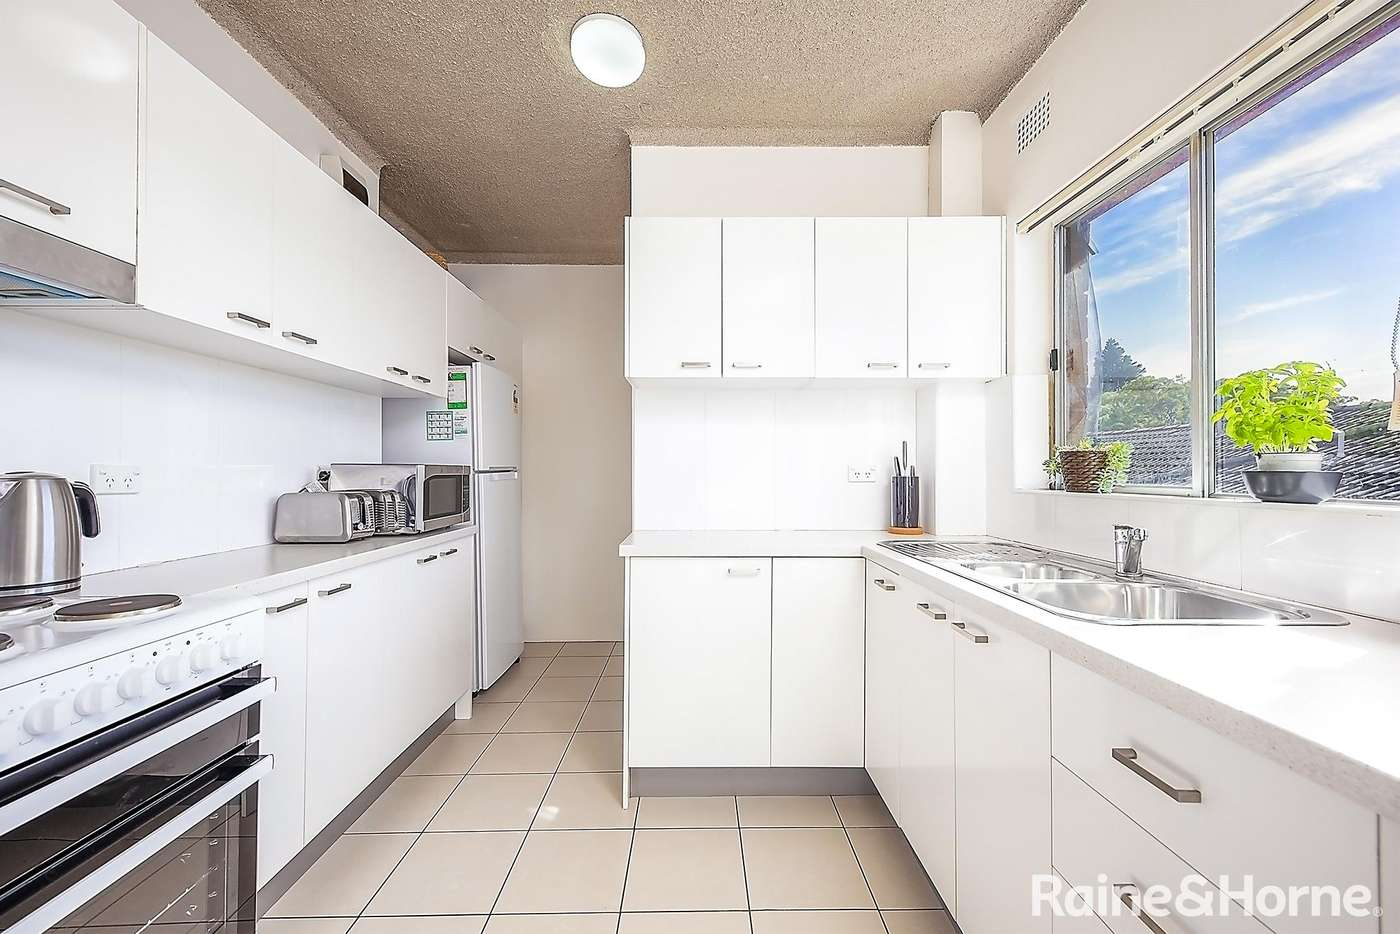 Fifth view of Homely apartment listing, 11/262 Maroubra Road, Maroubra NSW 2035